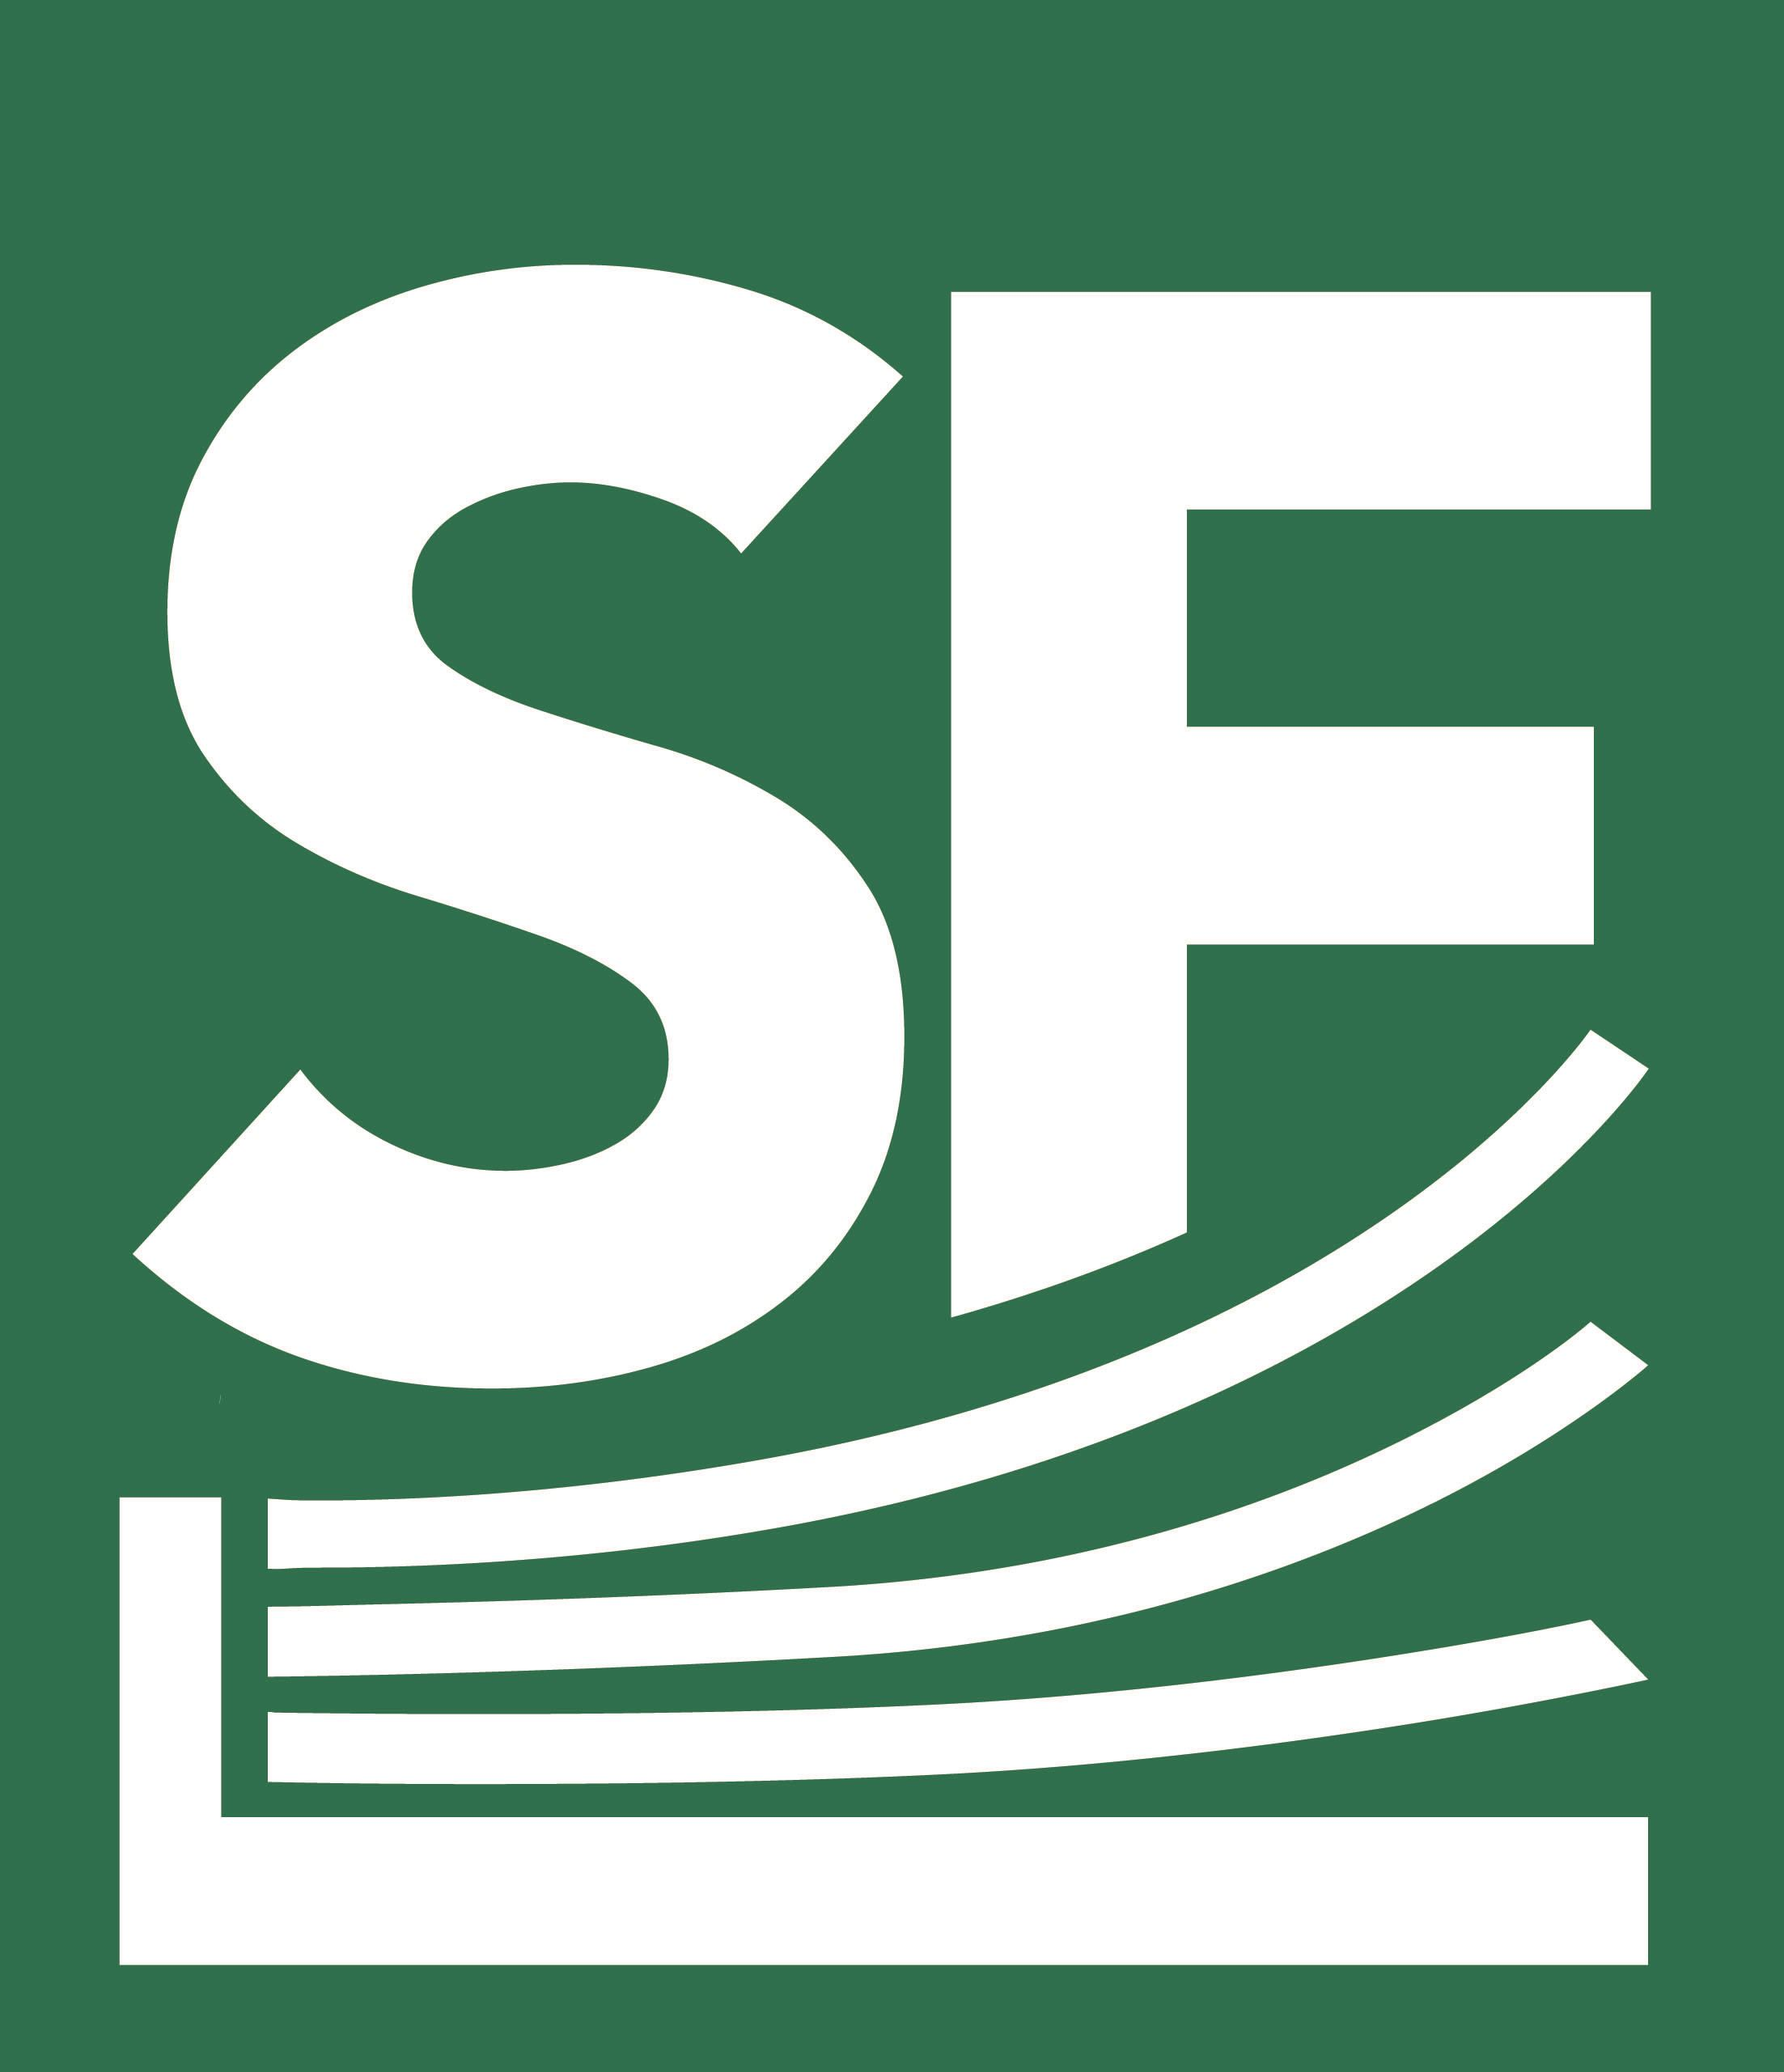 South Fayette Library Icon letters S and F with book image and green background